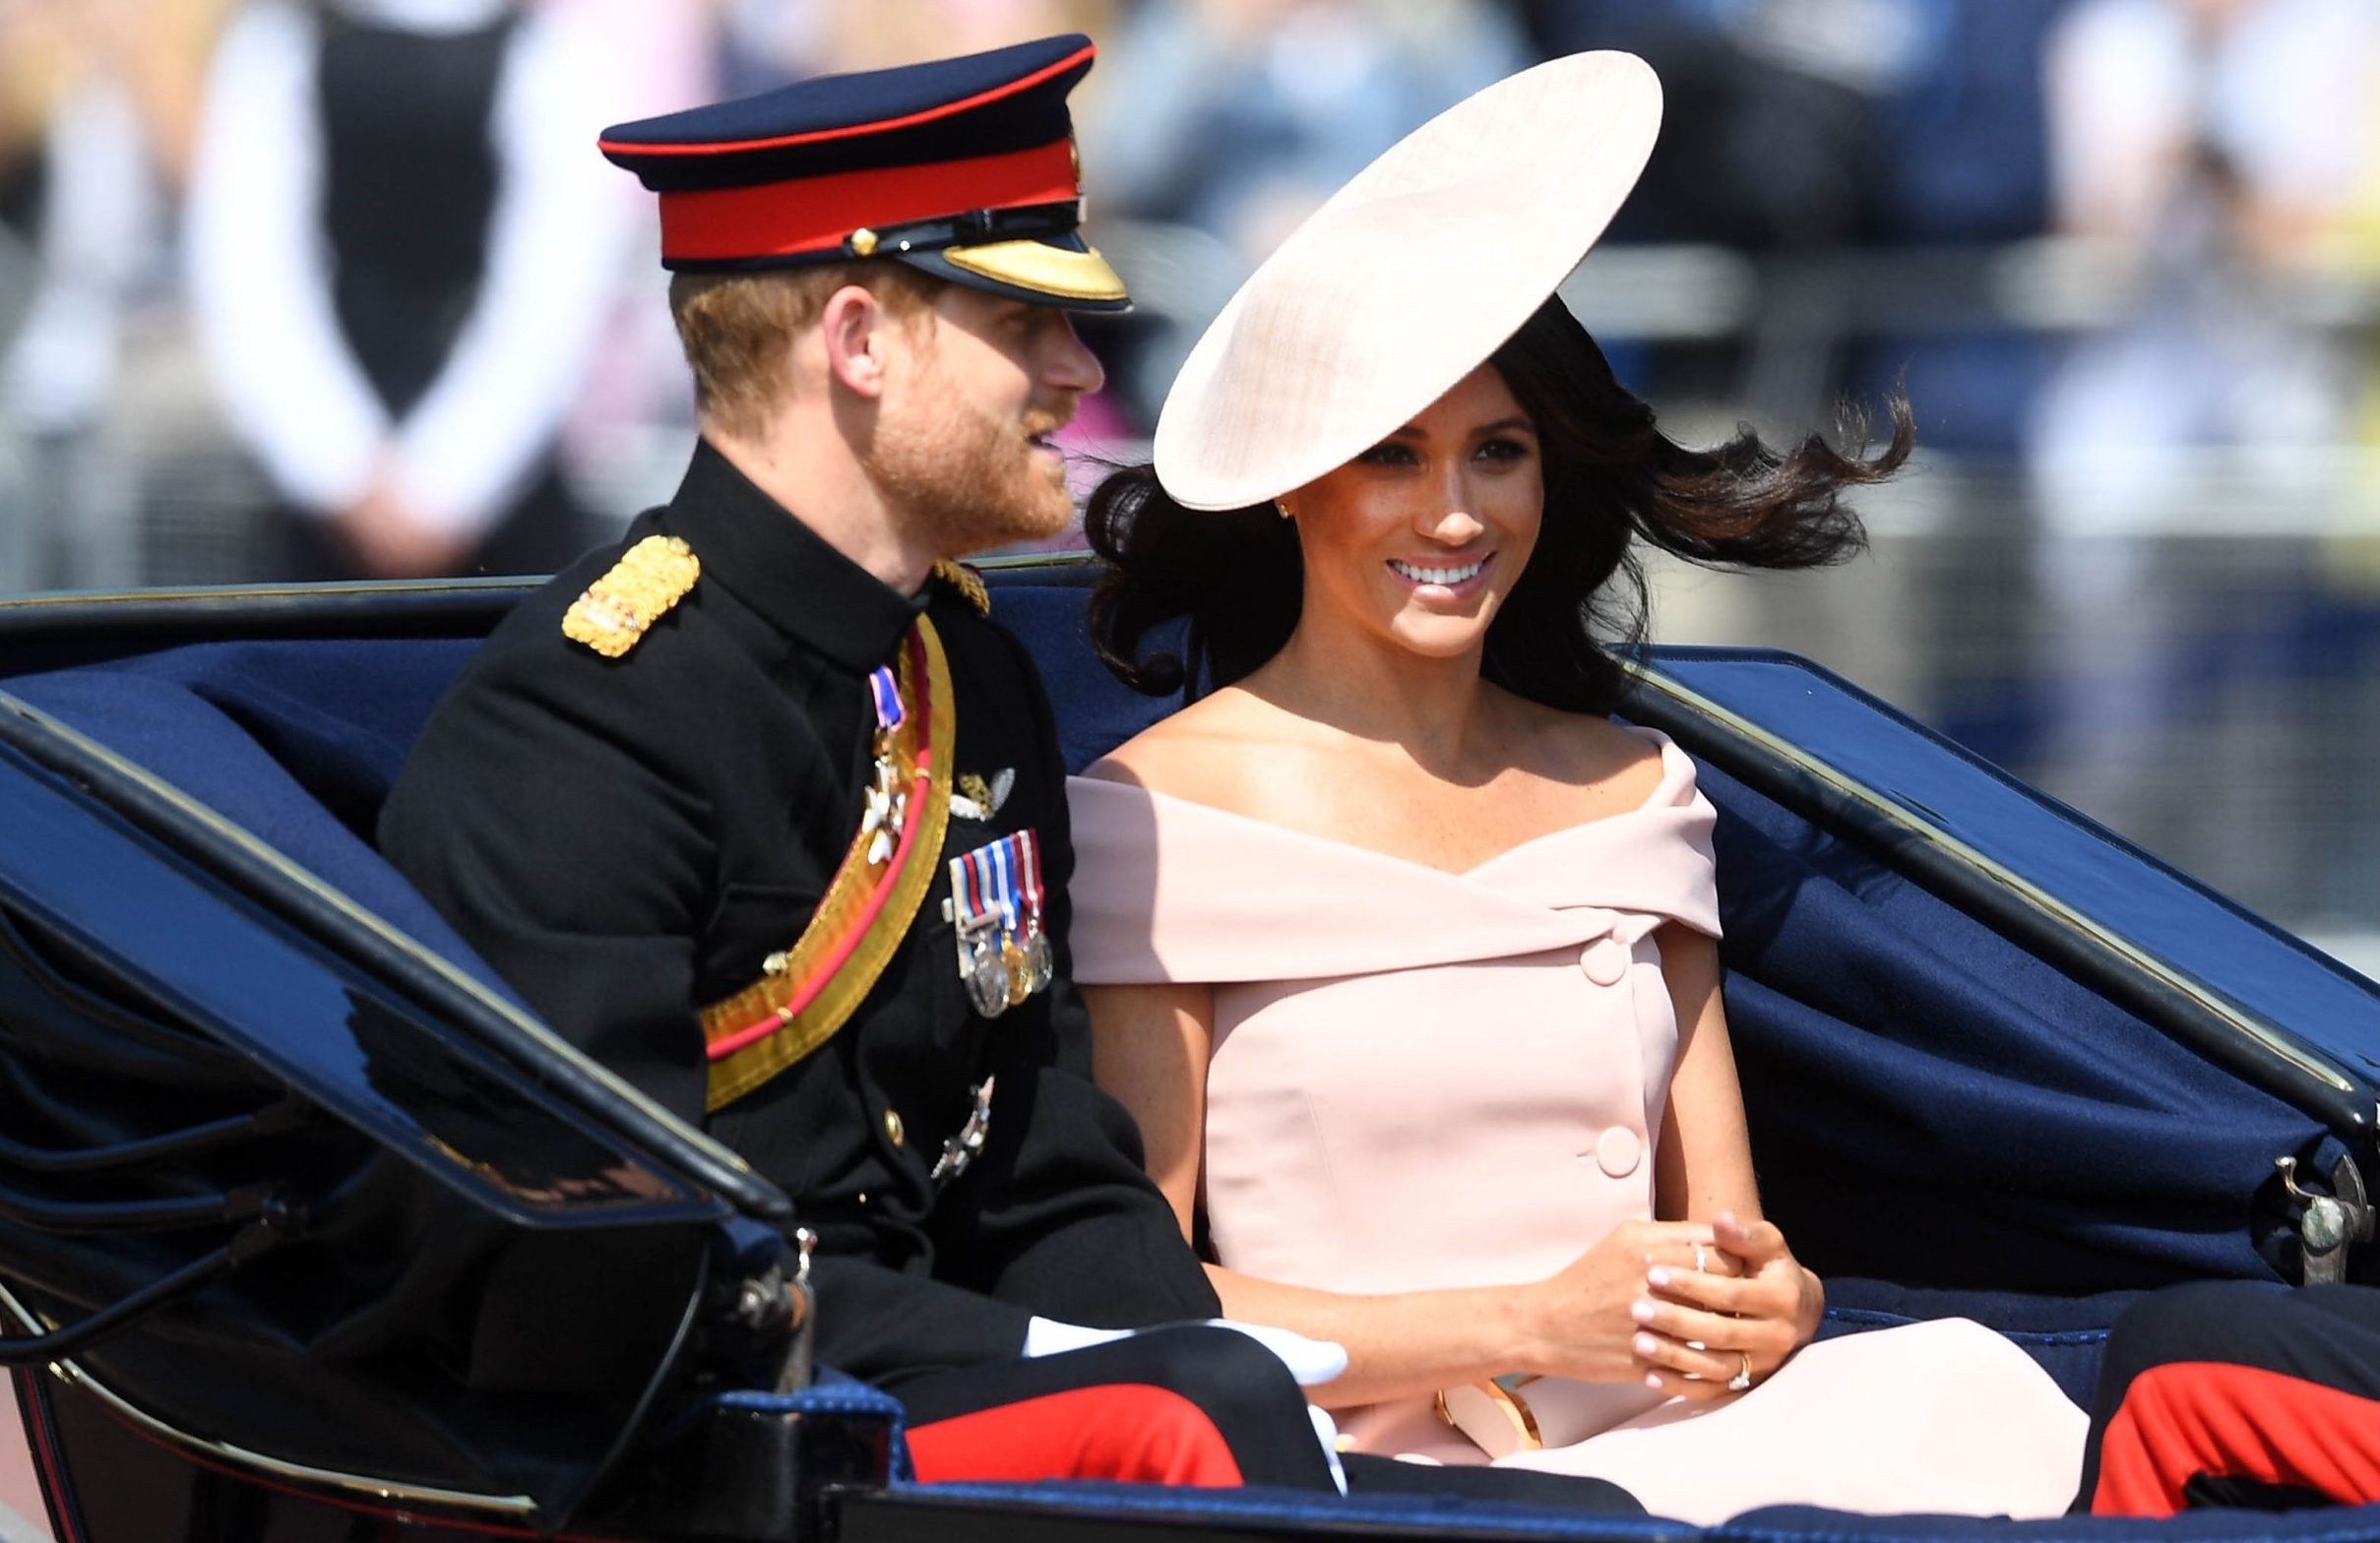 Image ?Licensed to i-Images Picture Agency. 09/06/2018. London, United Kingdom. Trooping the Colour. Prince Harry and Meghan Markle join Queen Elizabeth II accompanied by members of the Royal Family attend Trooping the Colour. Where over 1400 parading soldiers, 200 horses and 400 musicians come together each June in a great display of military precision, horsemanship and fanfare to mark The Queen's official birthday.Picture by Andrew Parsons / i-Images